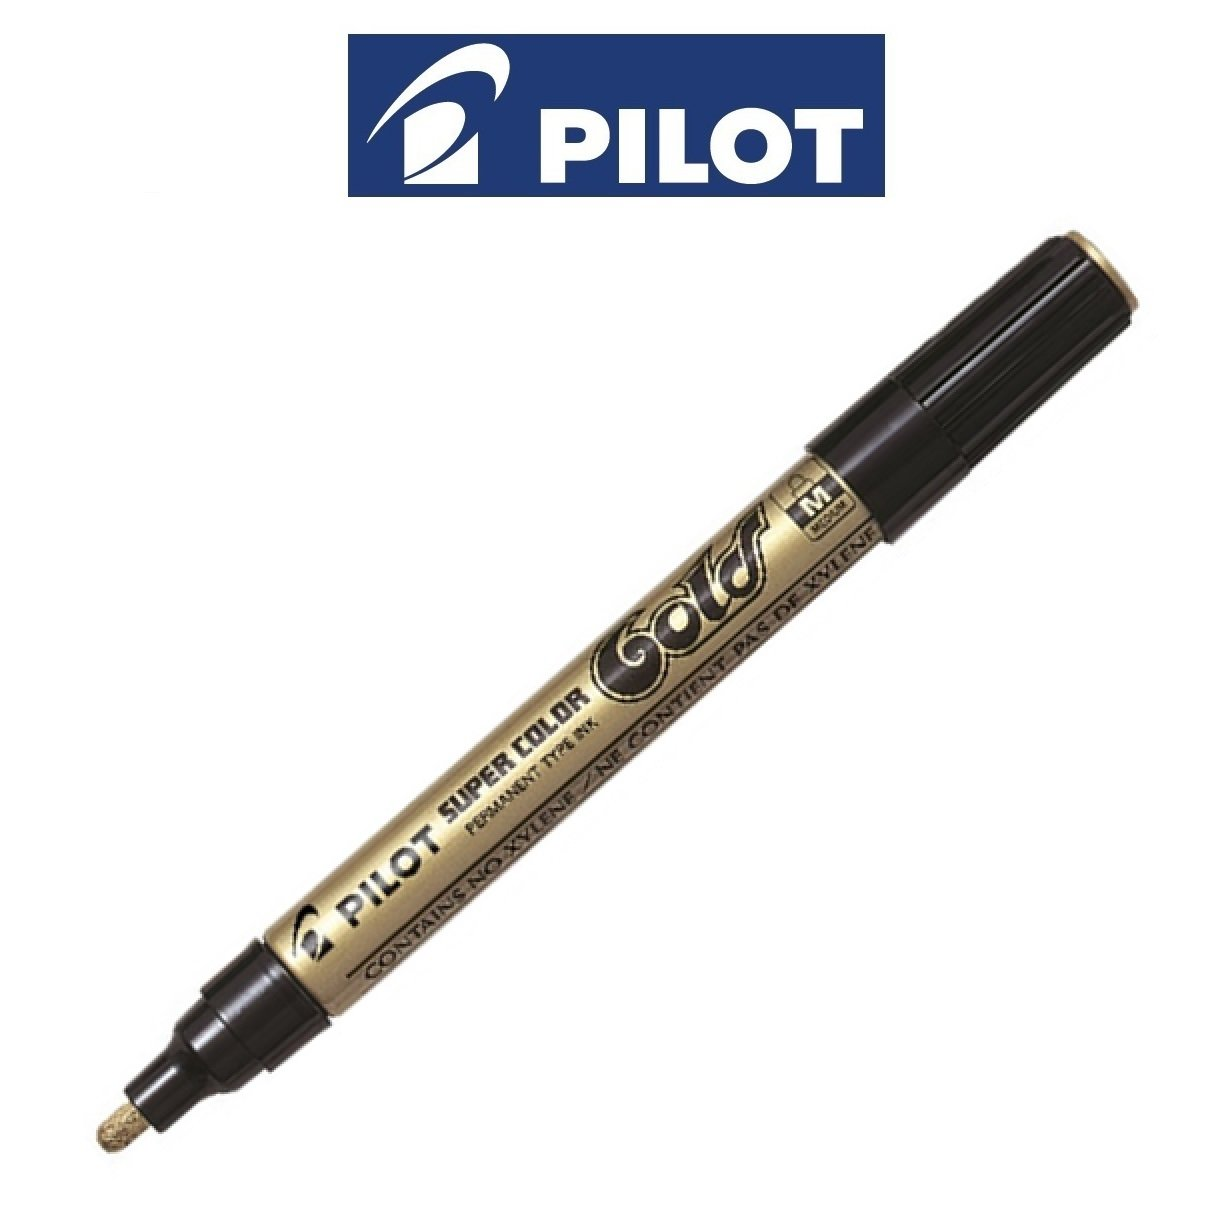 Pilot Metallic Super Colour Gold Medium (2mm Line) Permanent Marker Paint Pens (1 Pen)